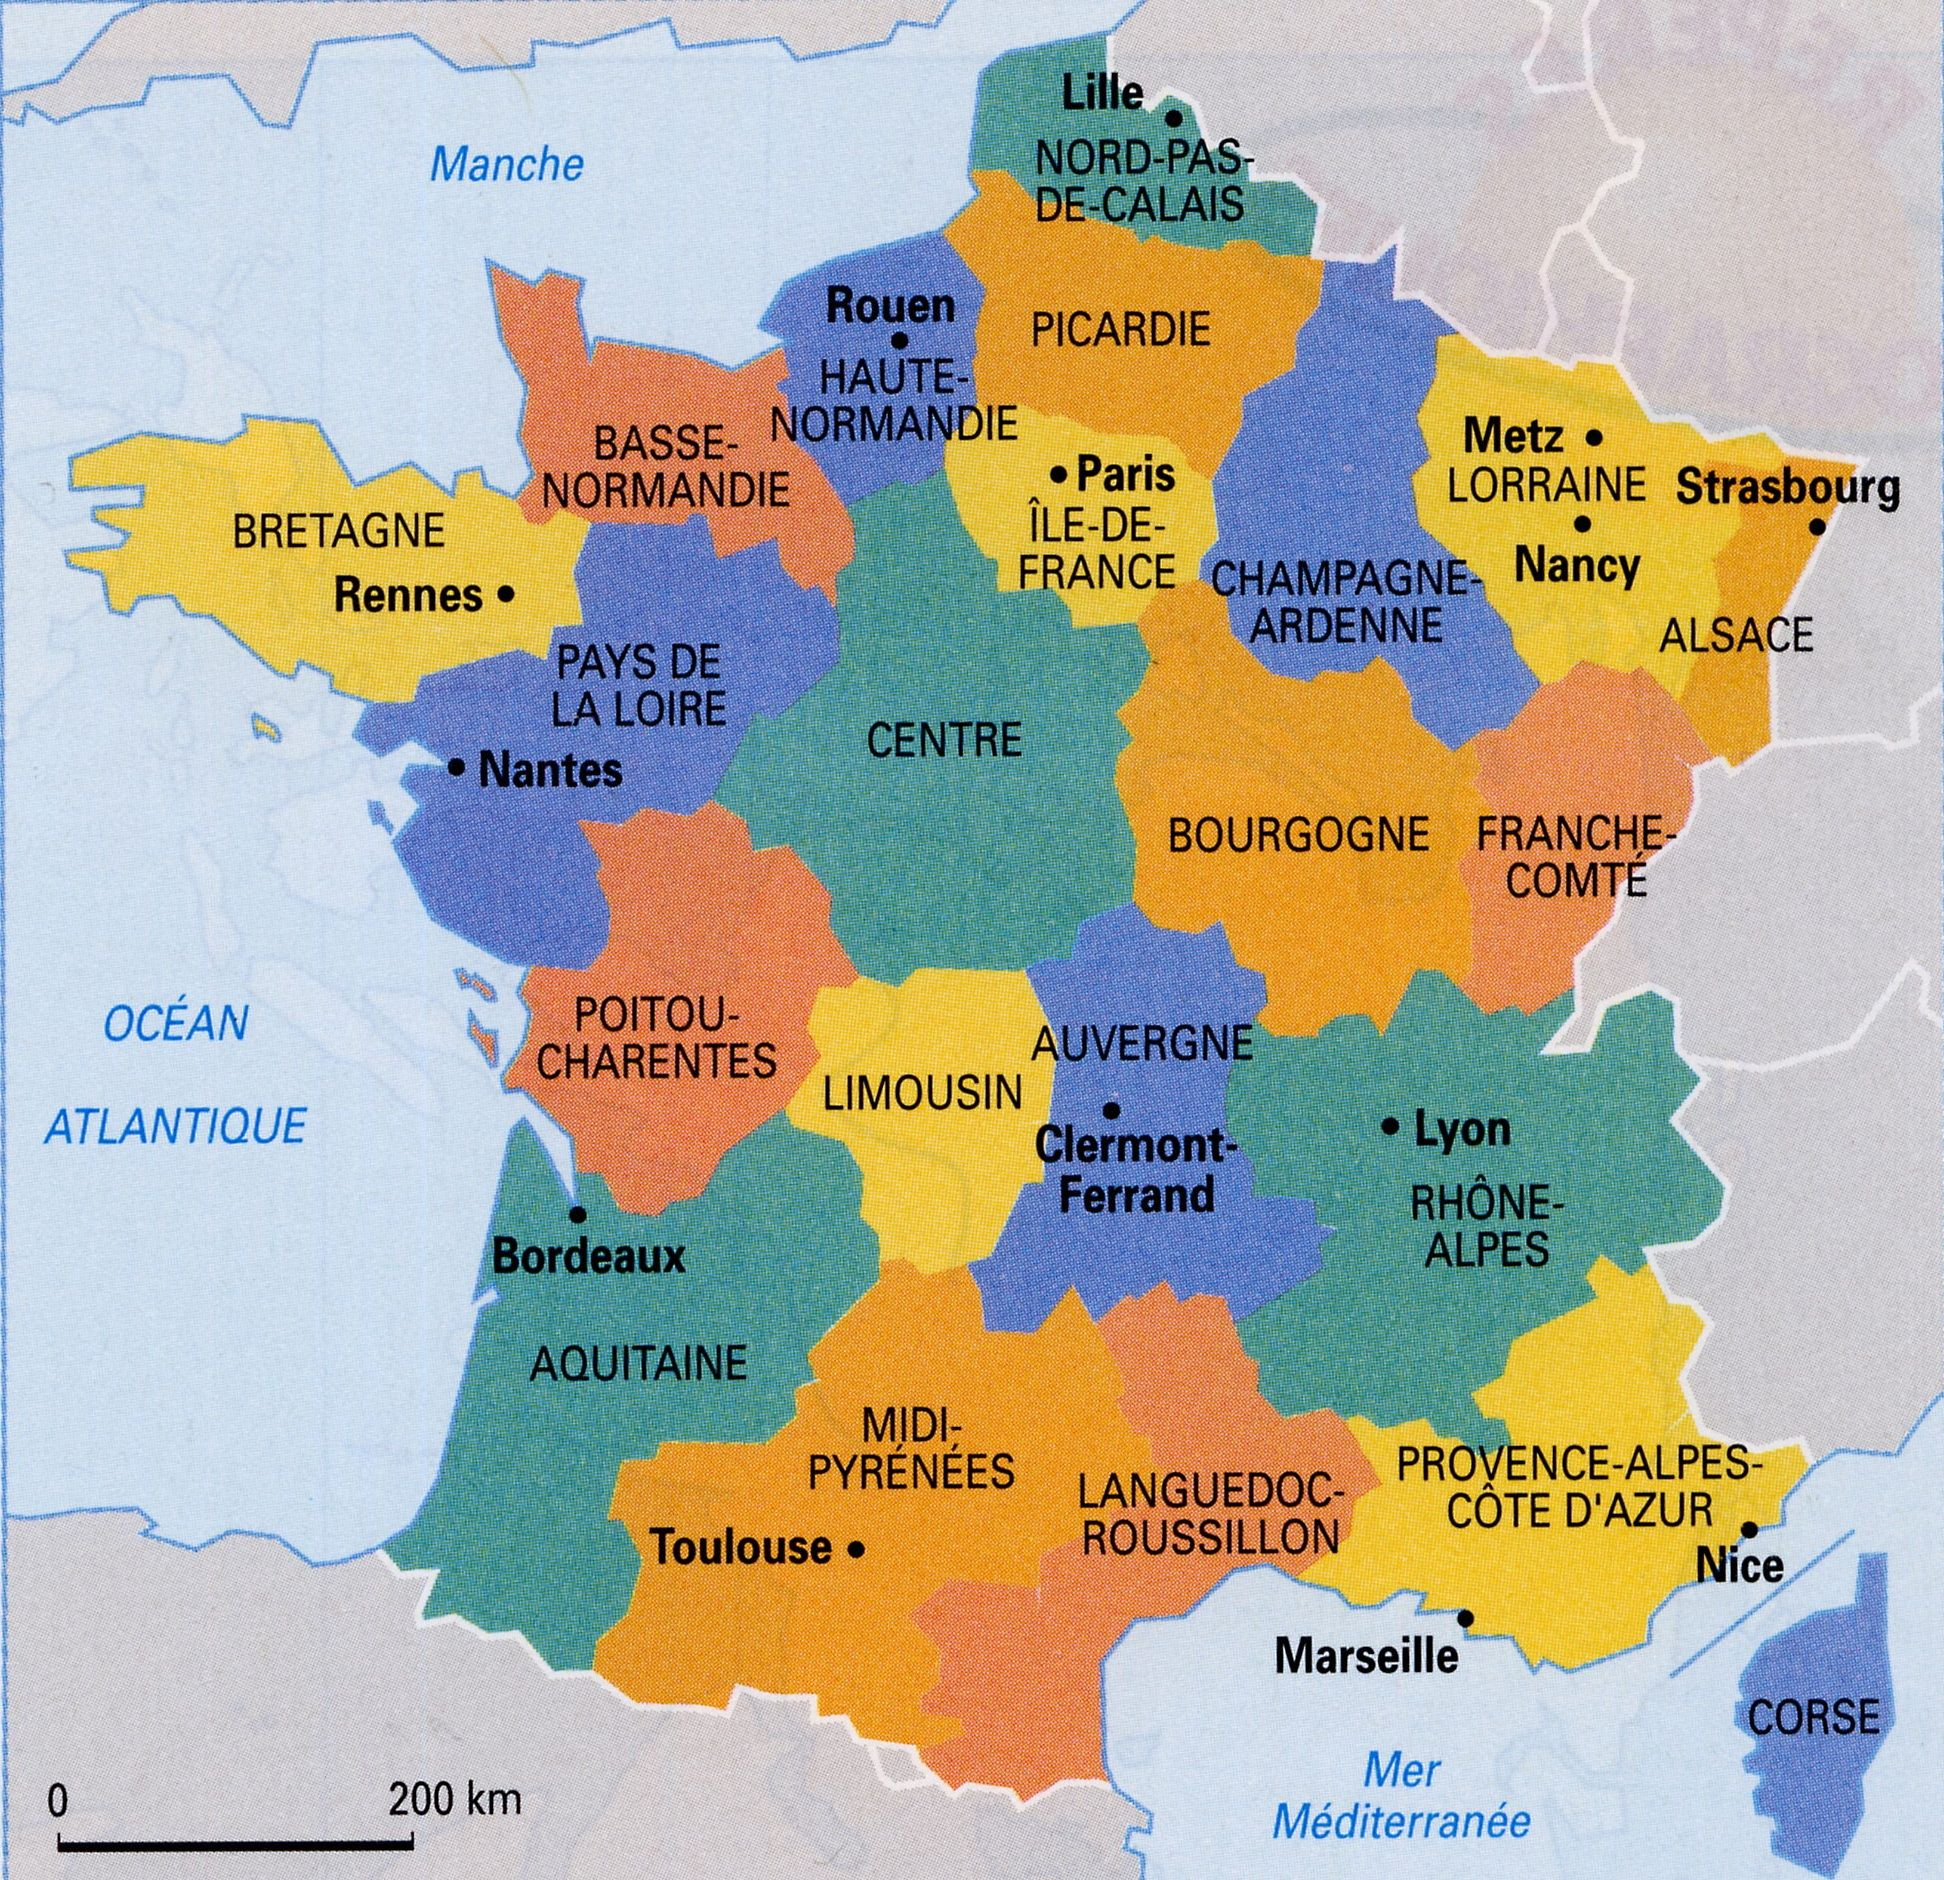 Regions In France Map.Image Result For Regions Of France Map Old Regions France France